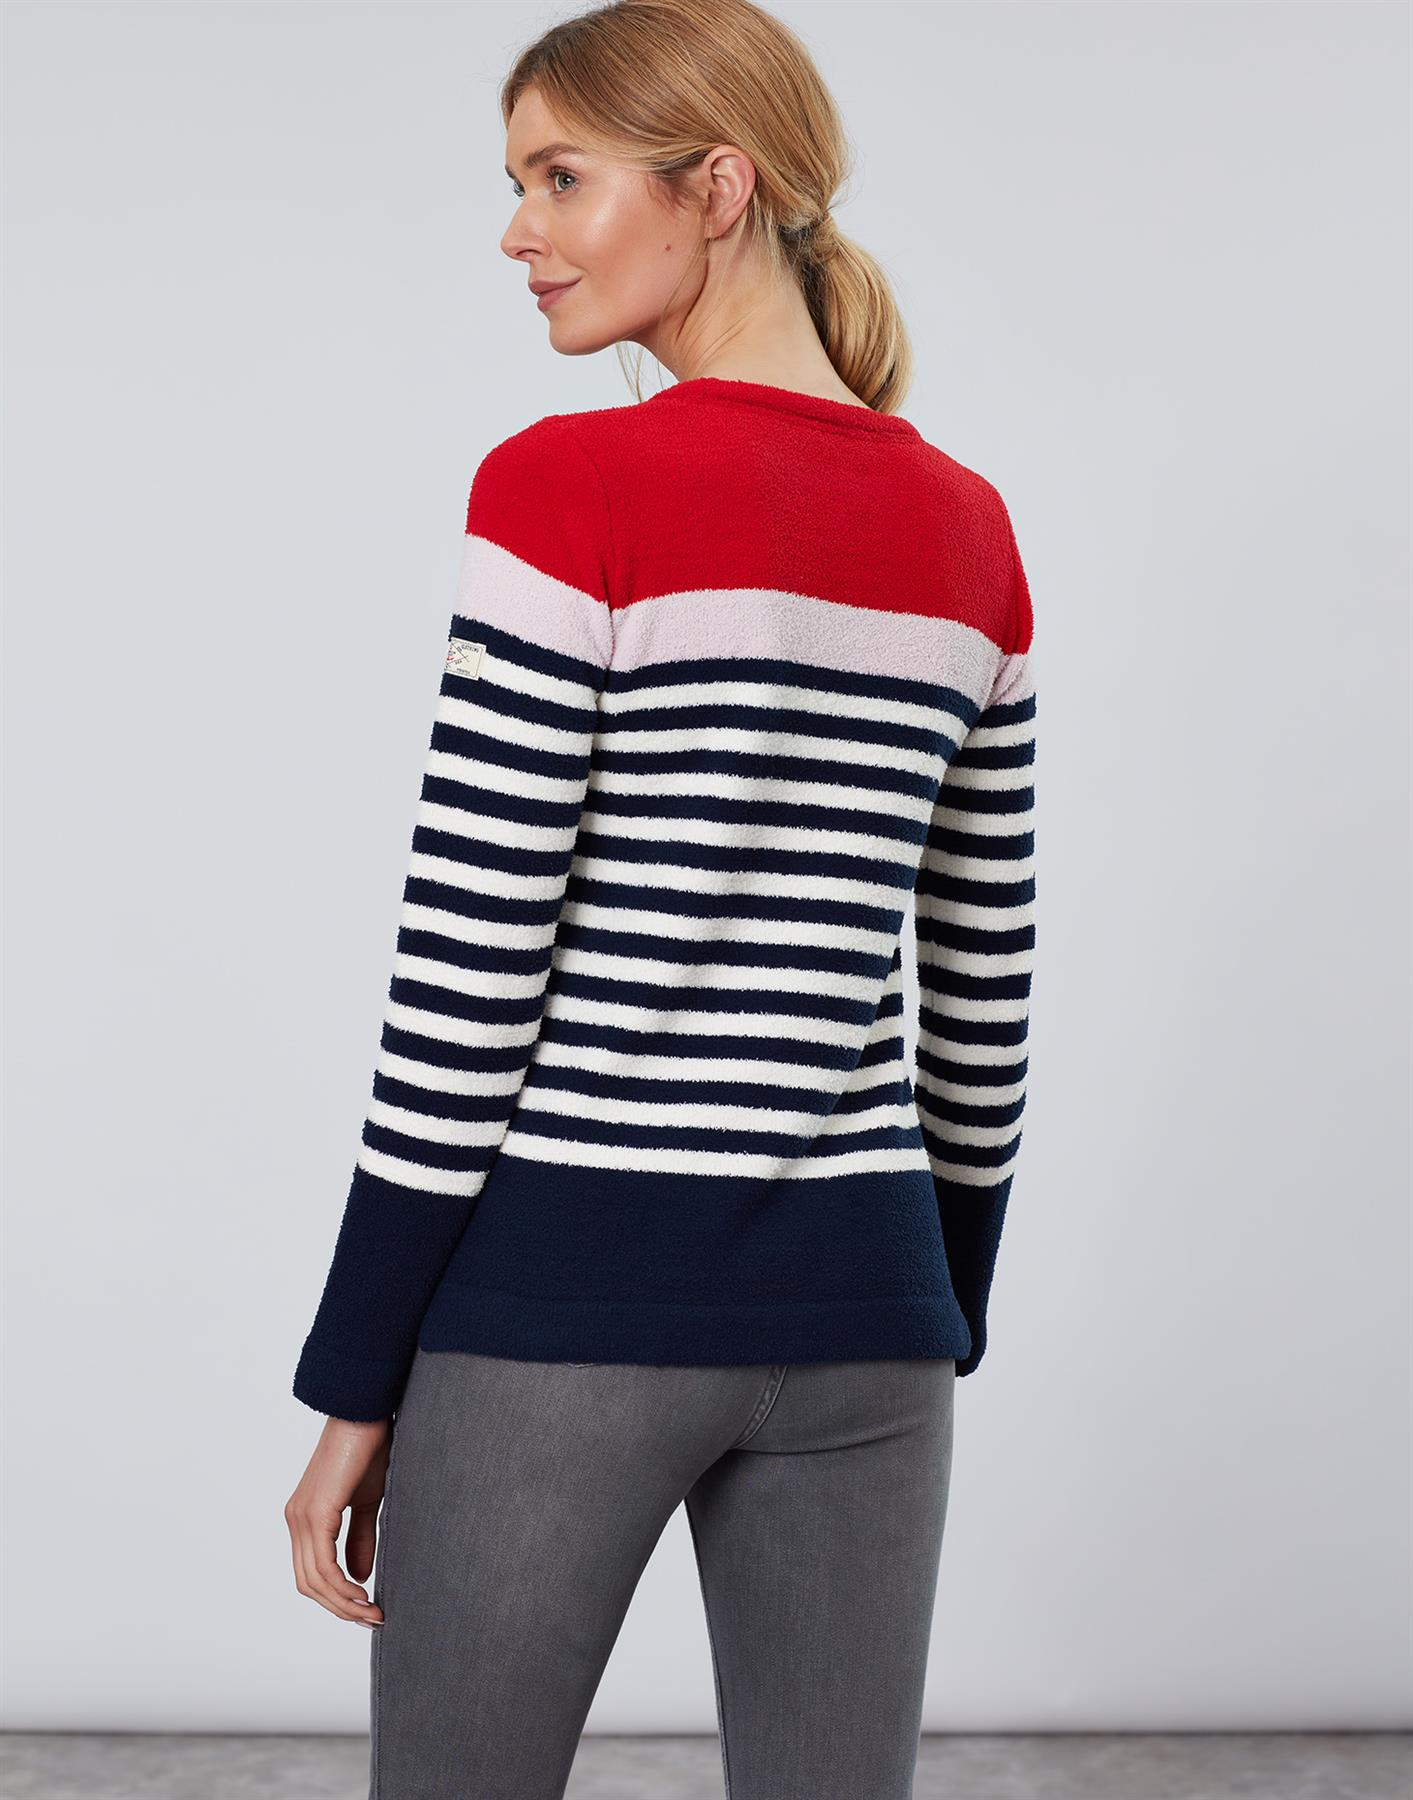 Jersey-De-Chenille-Joules-Para-Mujer-Seaham-Suave-AW19 miniatura 5